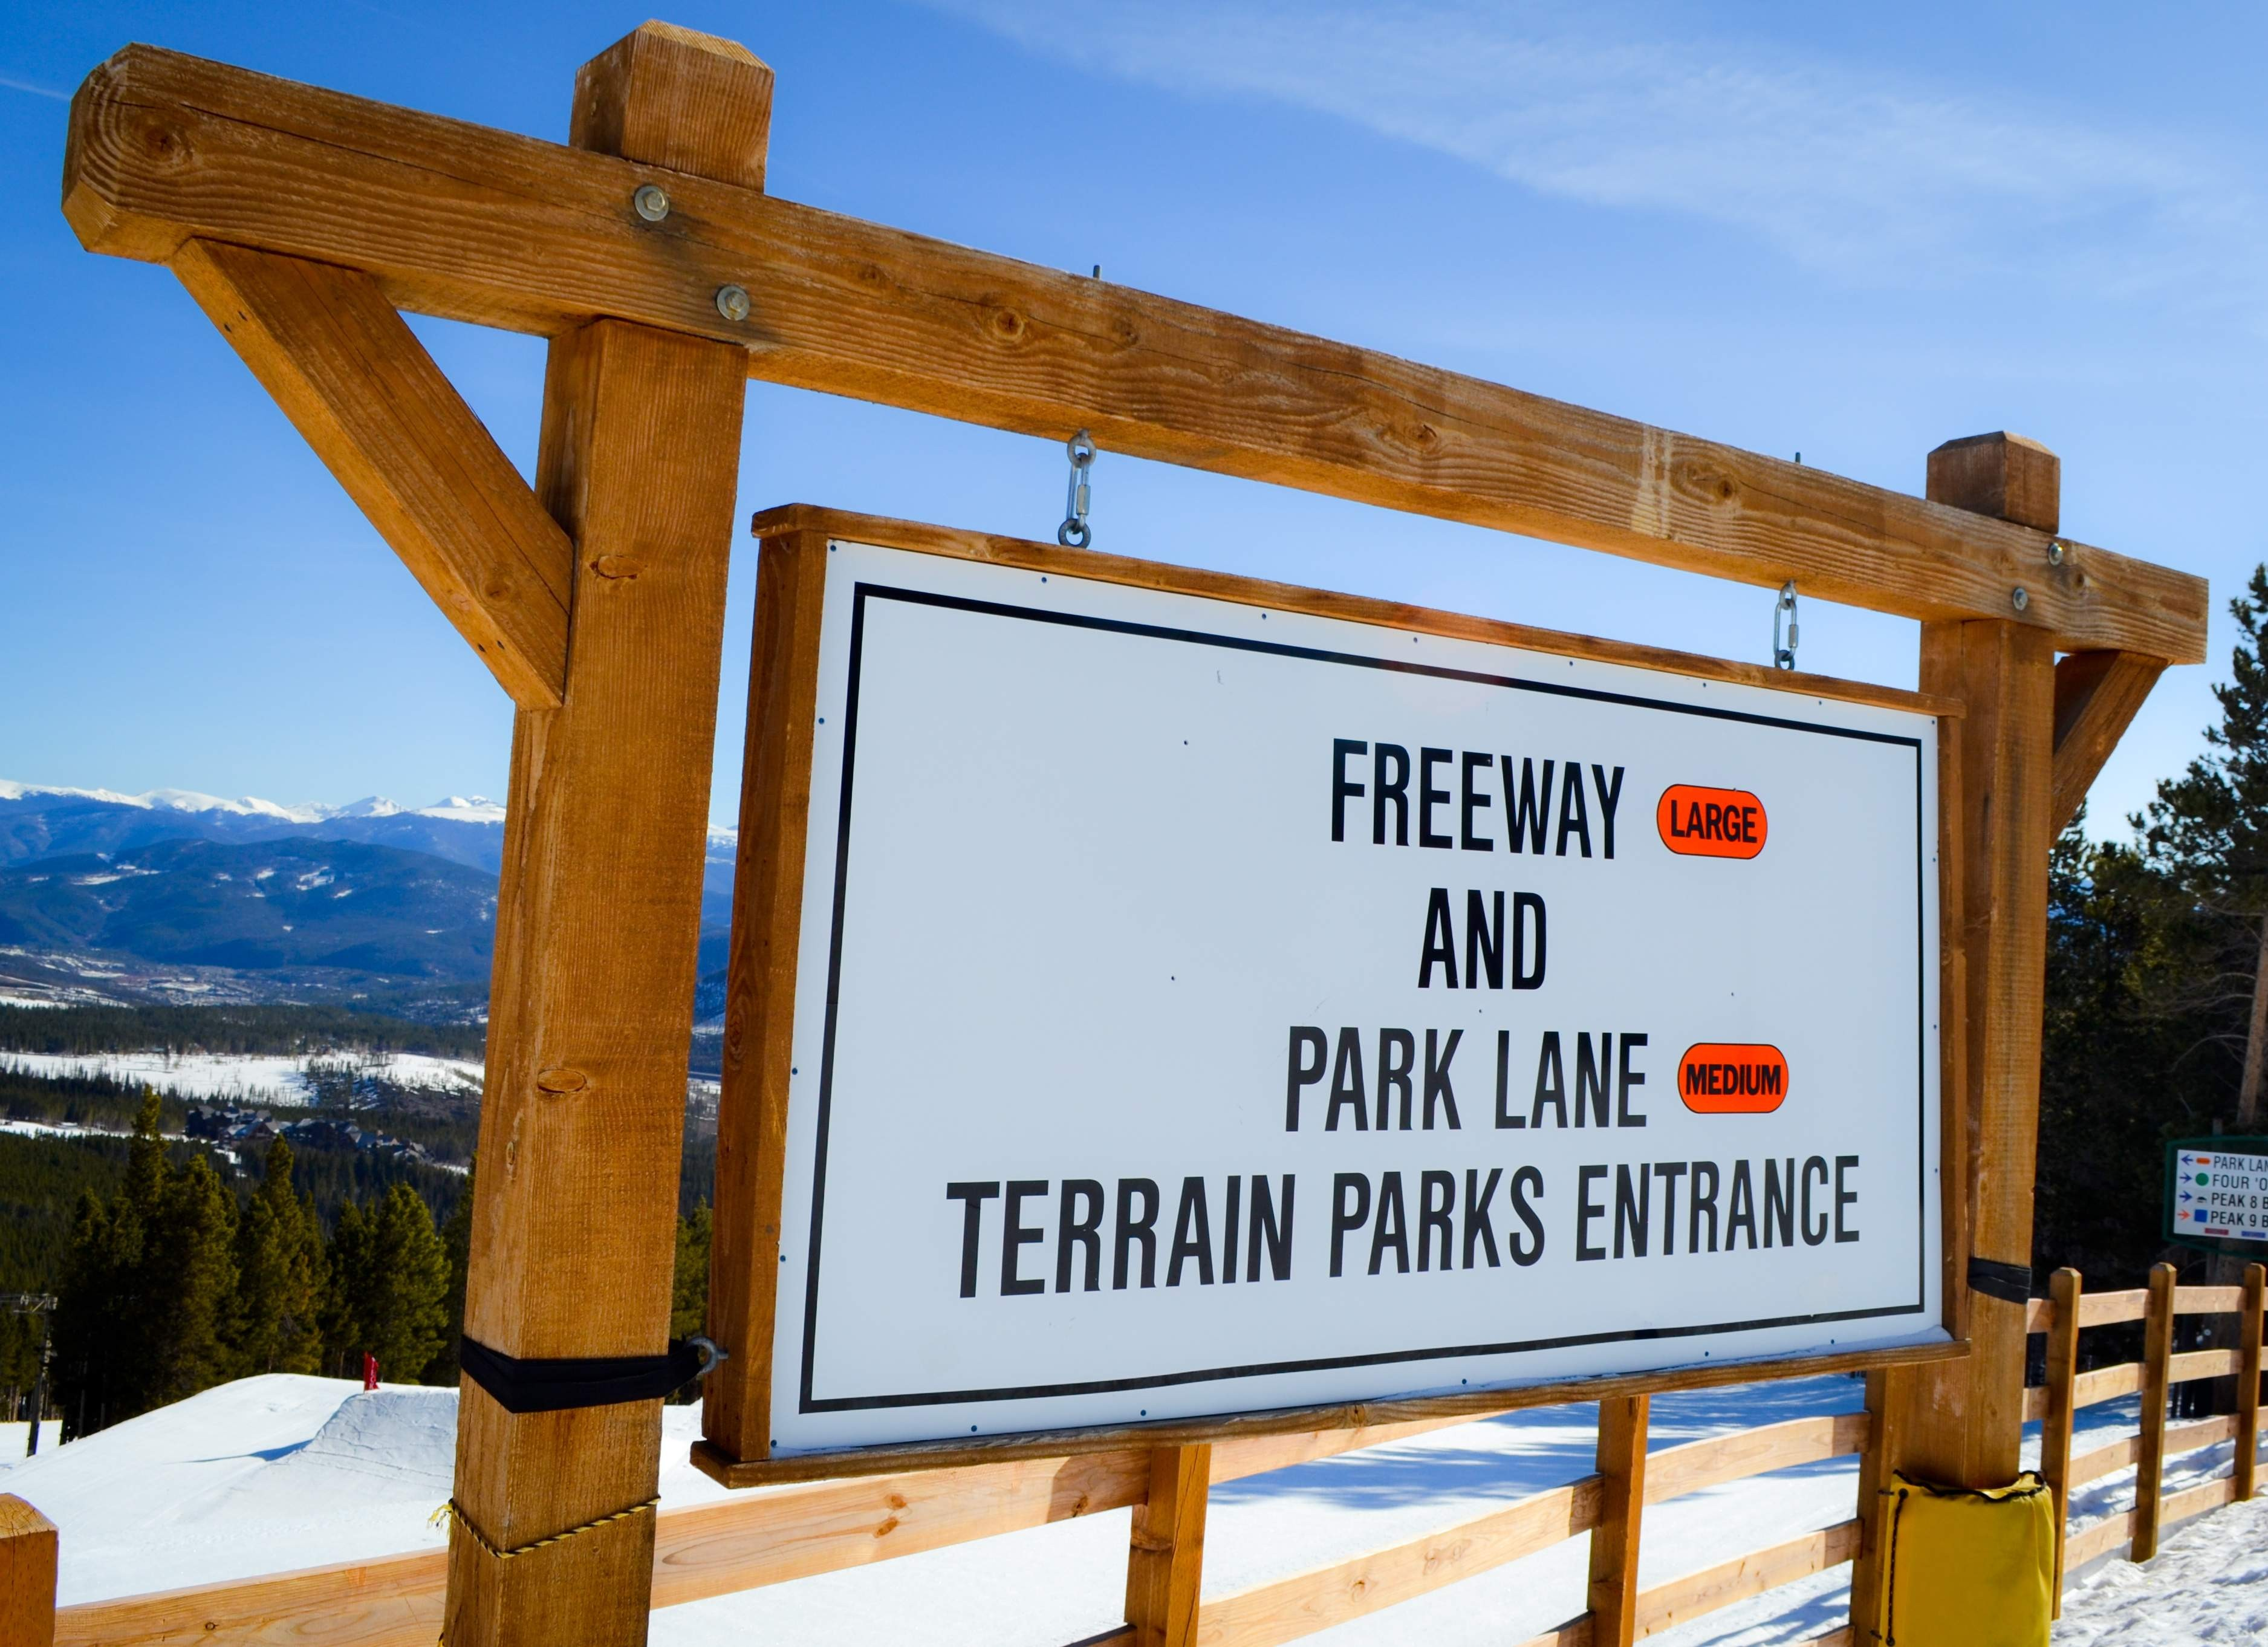 Terrain parks at Breck